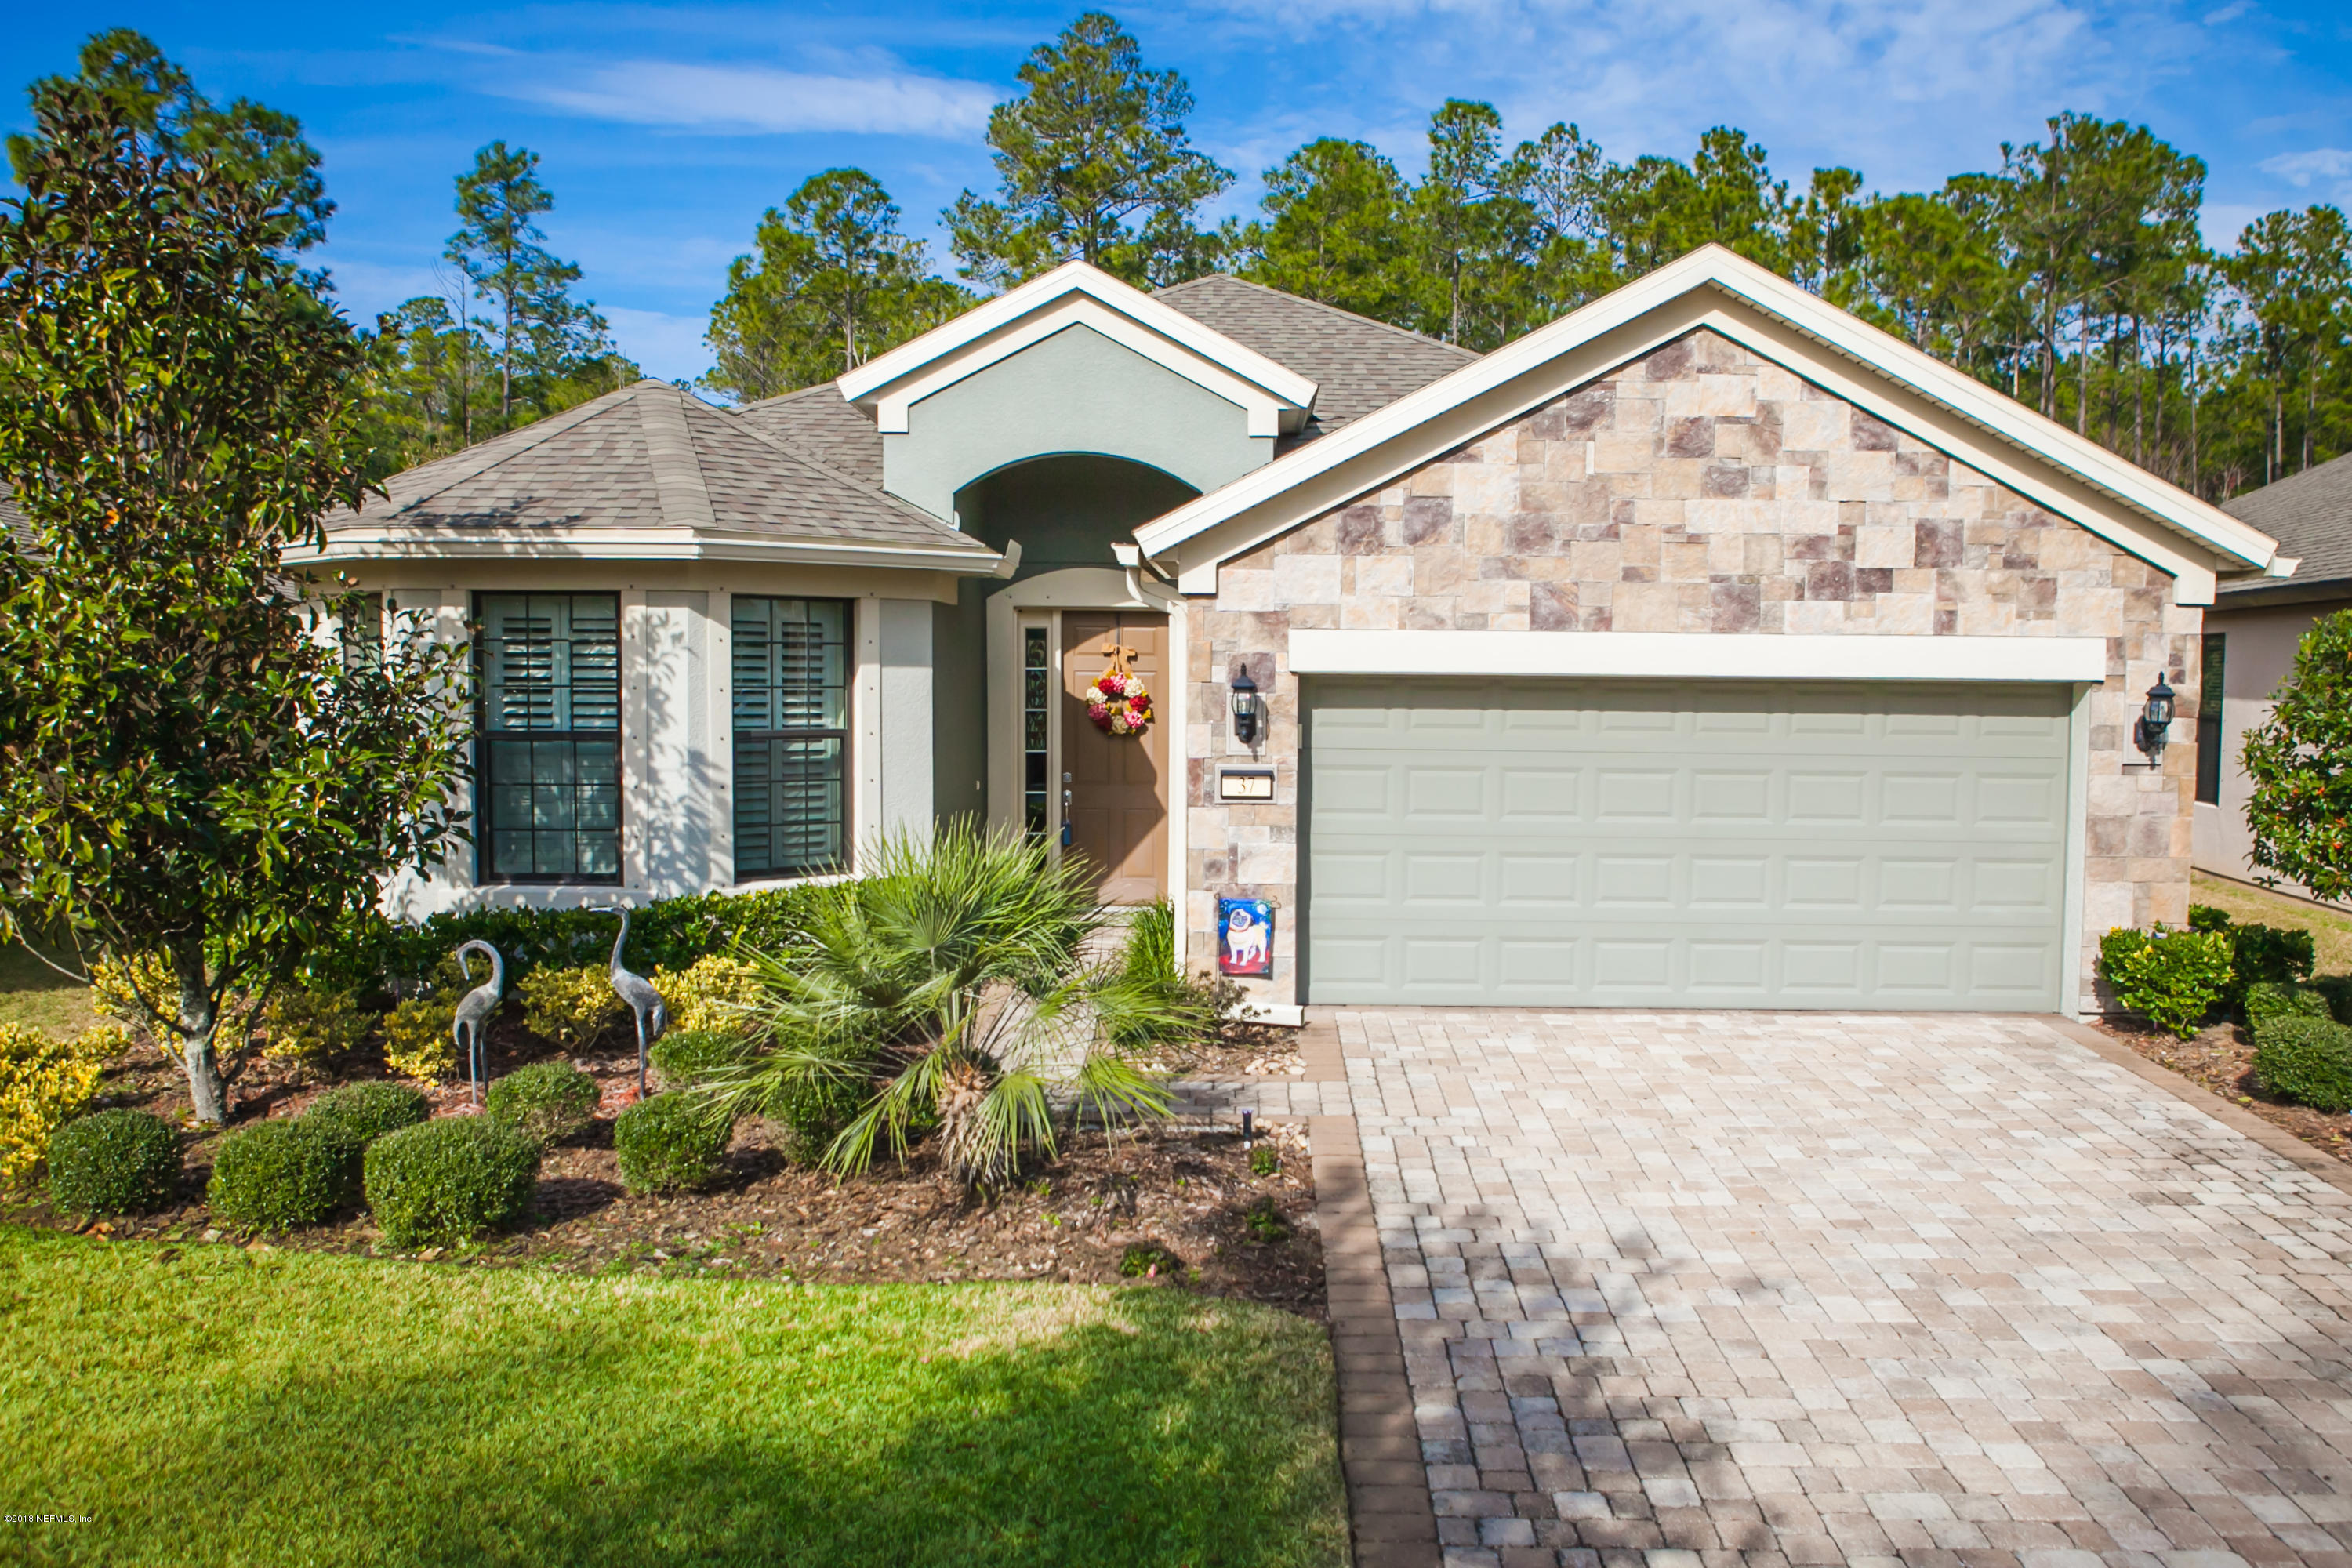 37 HAMMOCKS LANDING, PONTE VEDRA, FLORIDA 32081-0606, 3 Bedrooms Bedrooms, ,2 BathroomsBathrooms,Residential - single family,For sale,HAMMOCKS LANDING,945214